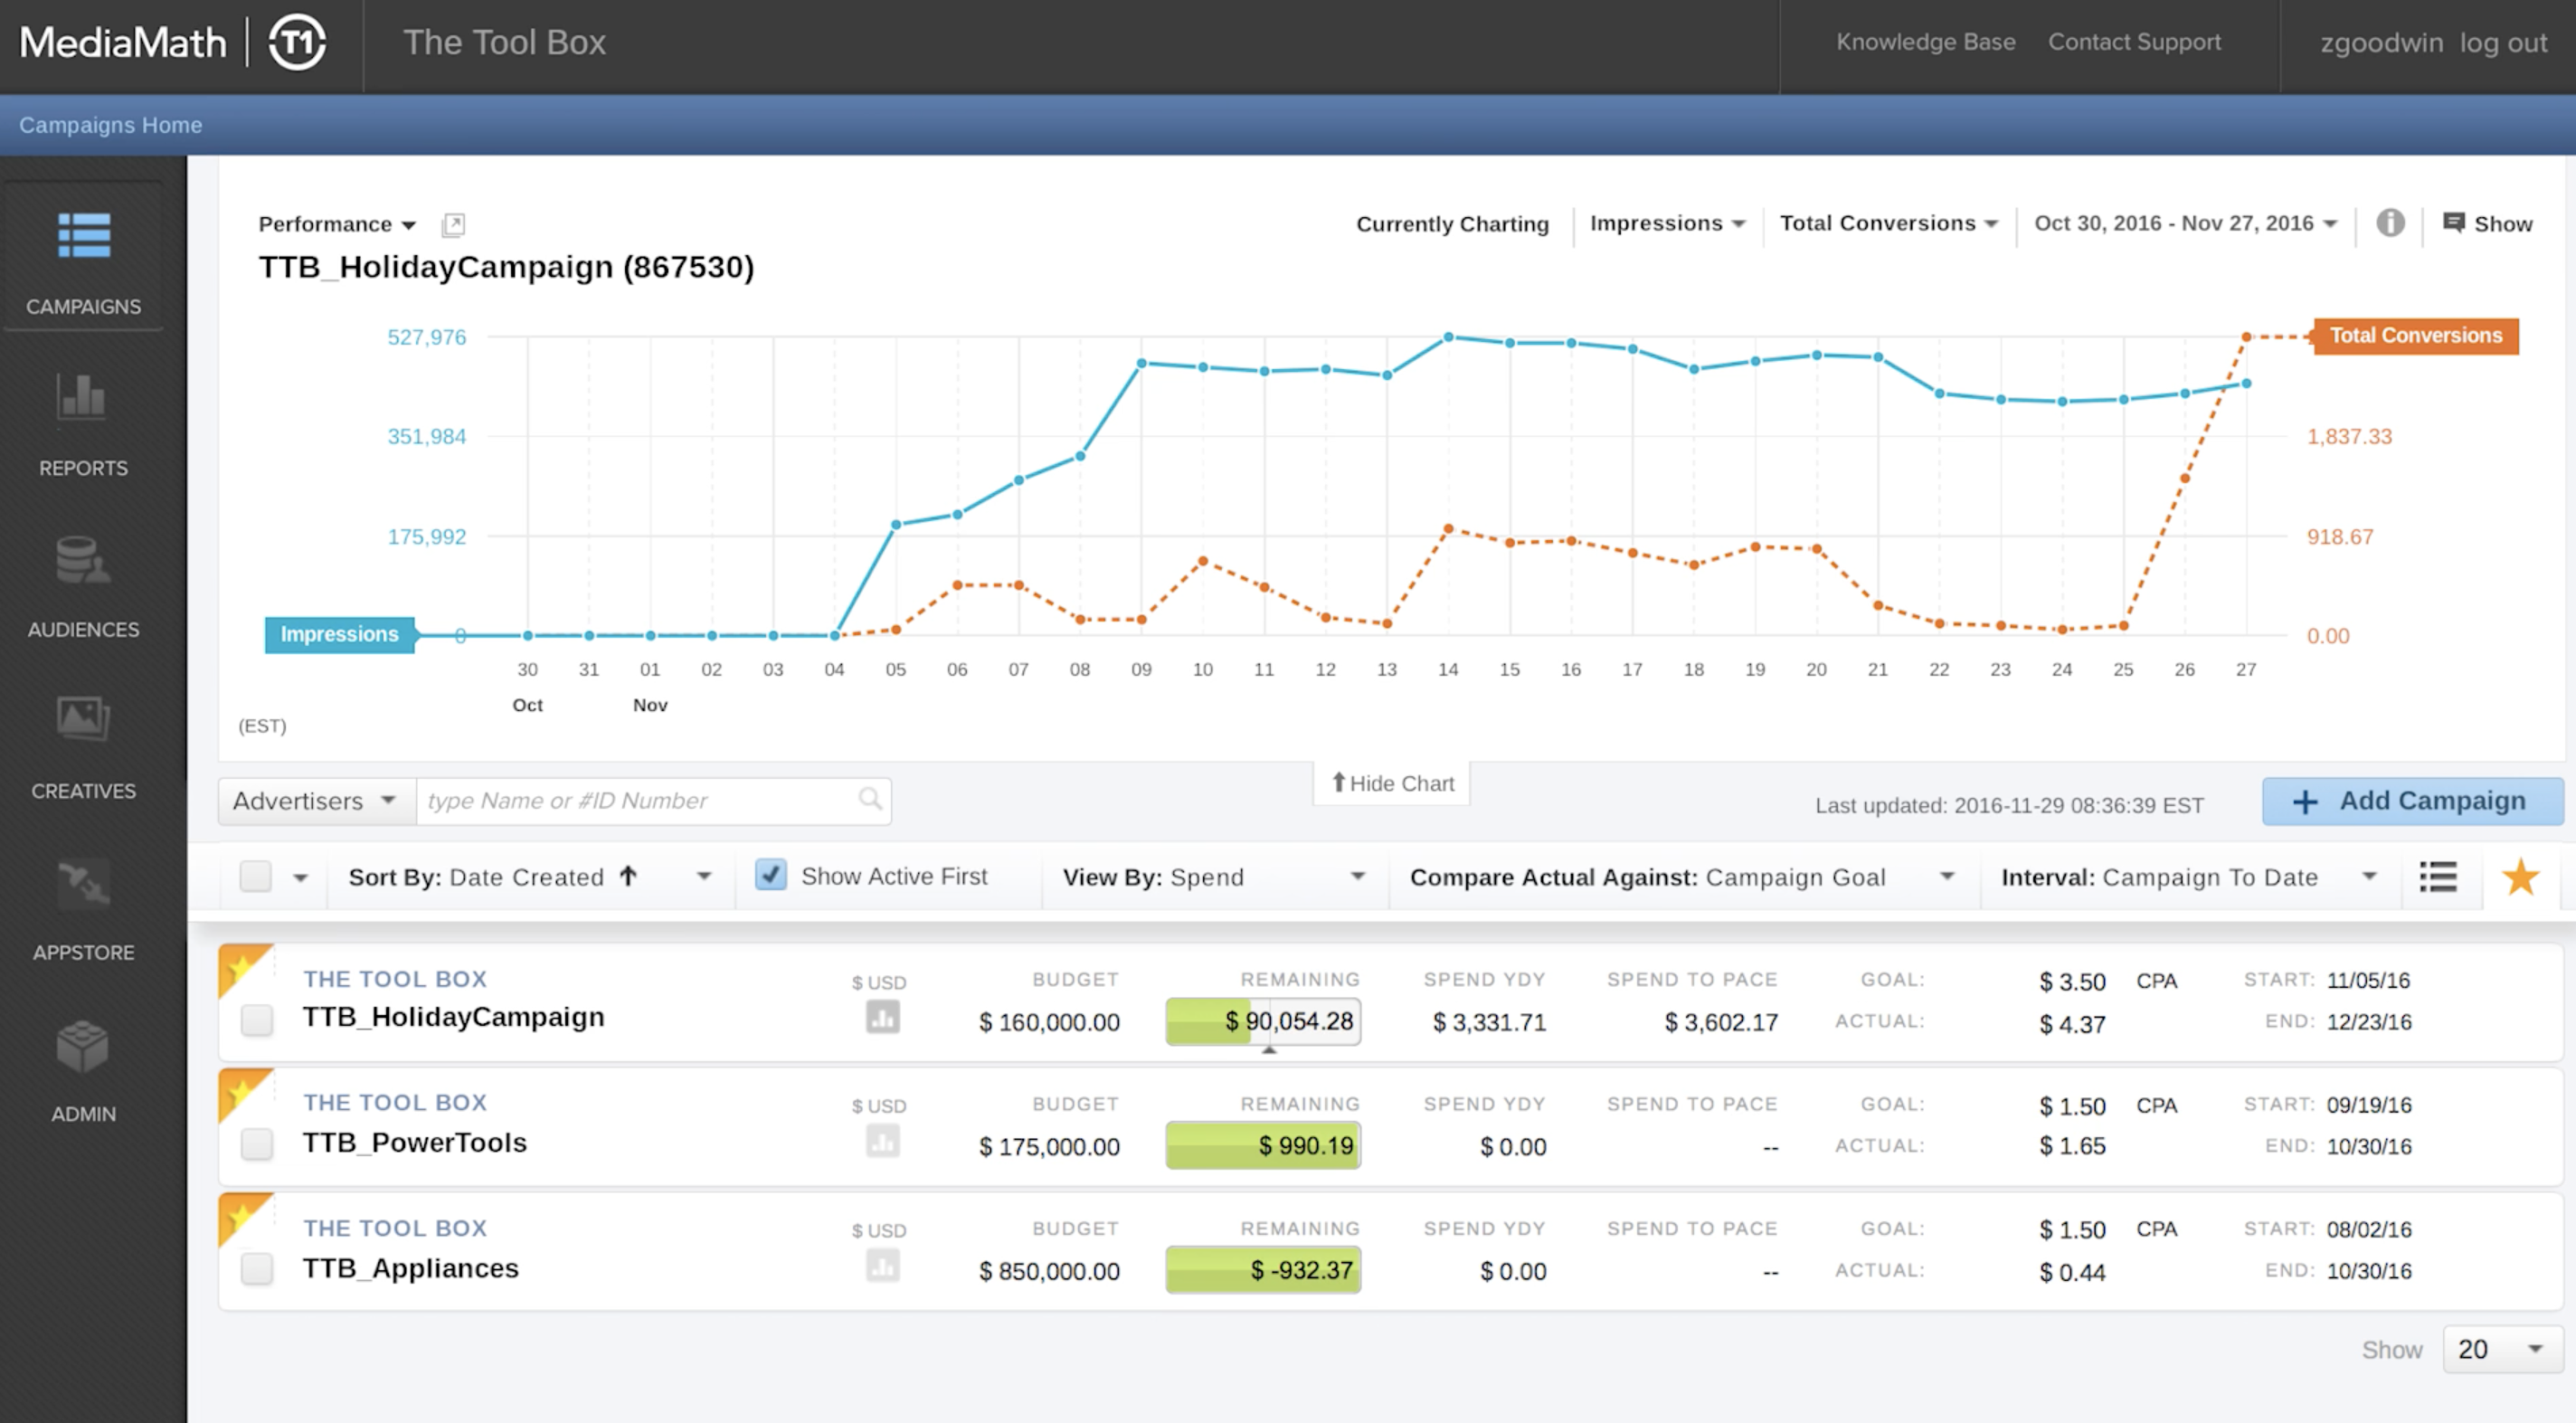 Captures campaign metrics so teams can analyze budget information and adjust campaigns based on campaign reports